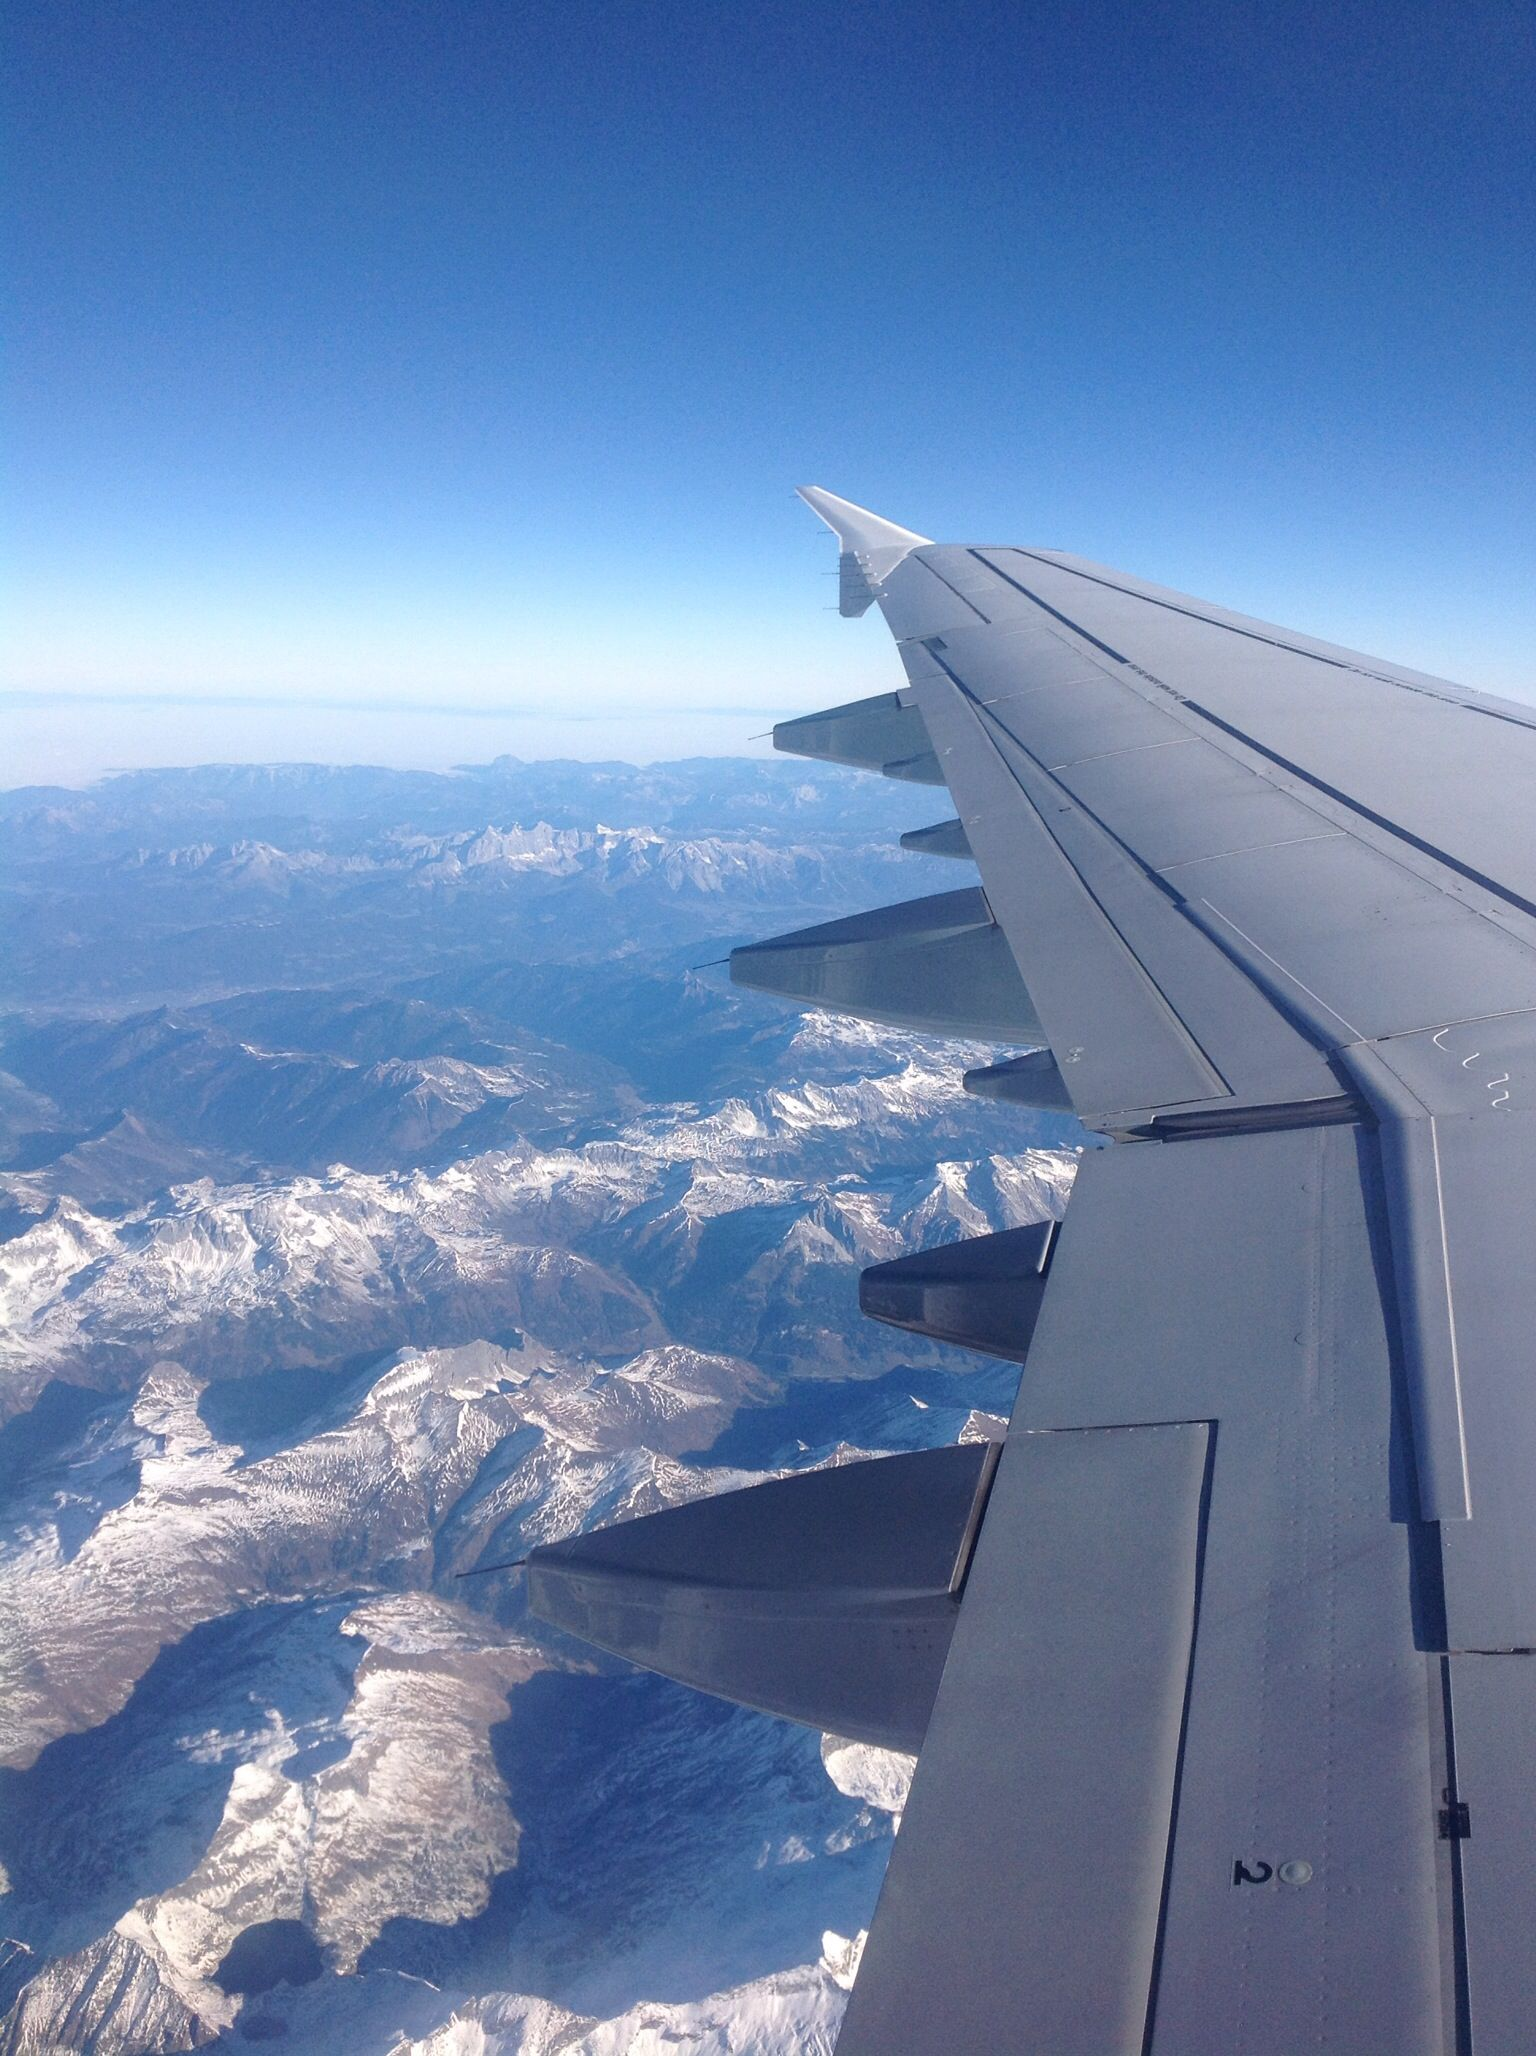 Flying over the Alps, http://janholmberg.weebly.com/in-english.html